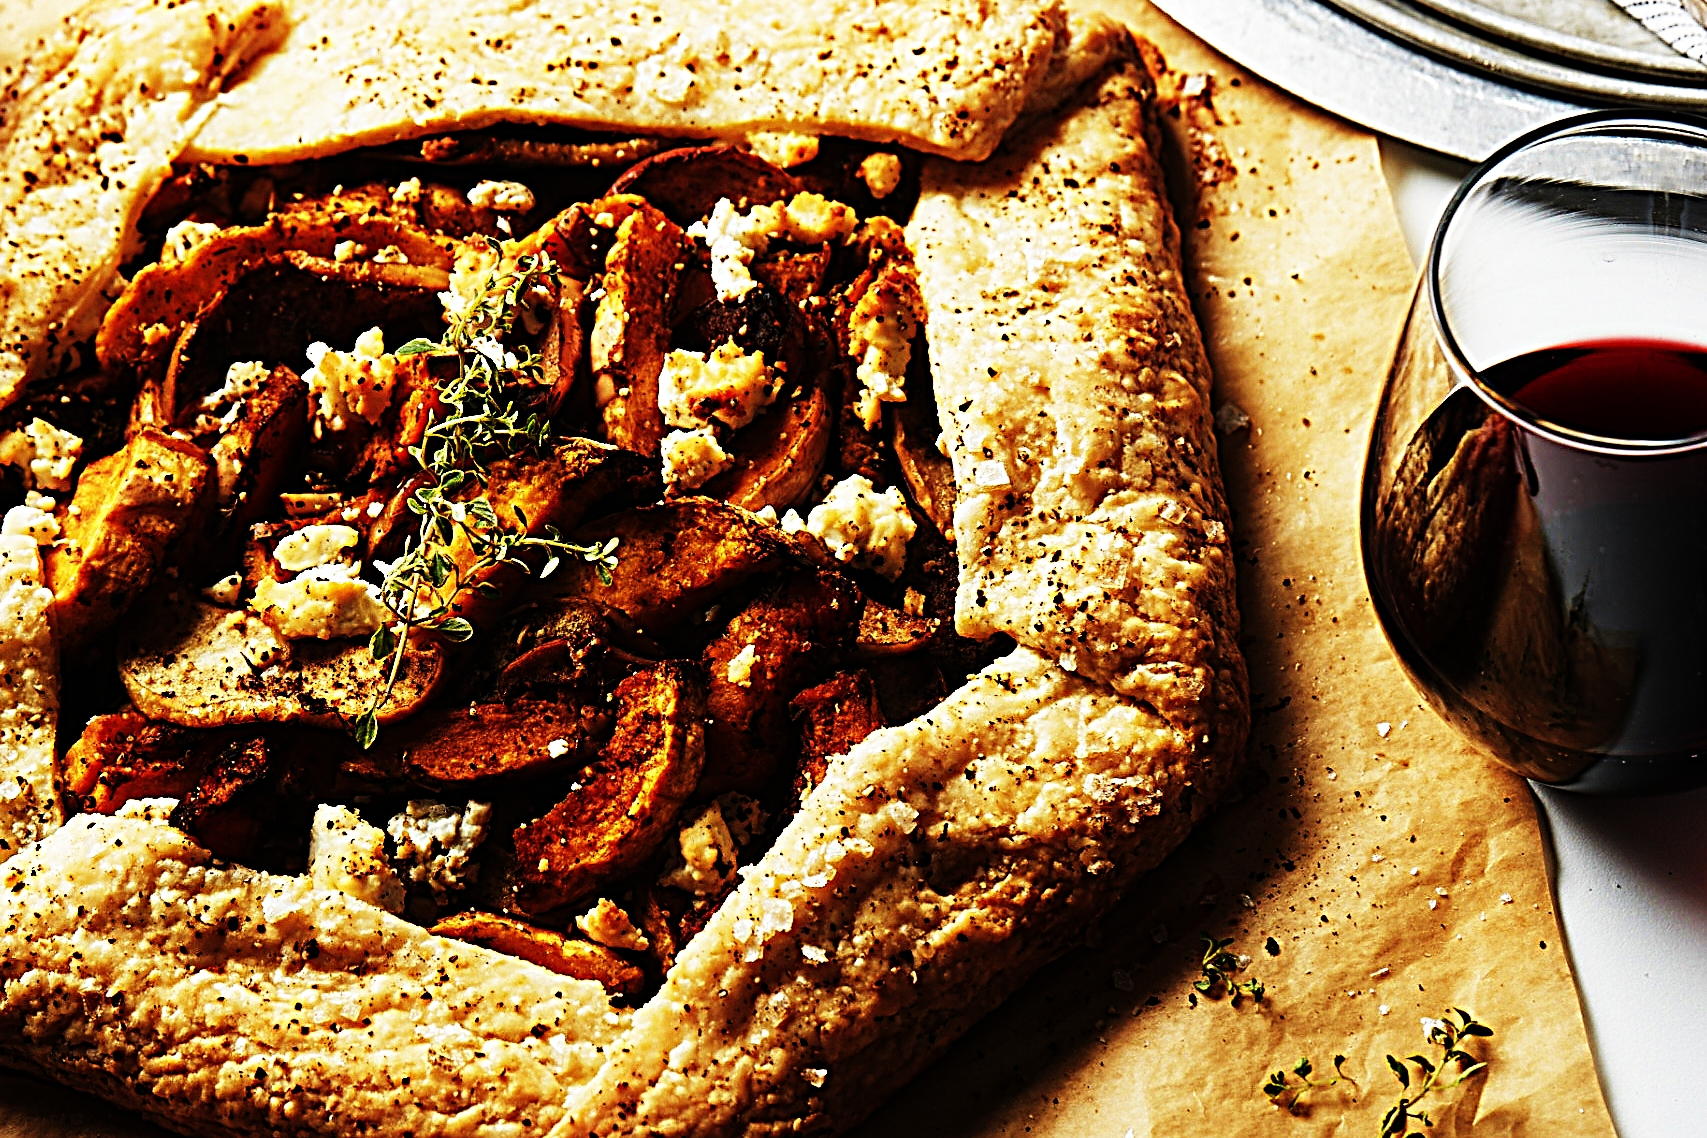 Stupid-Easy Recipe for Savory Butternut Squash, Apple, Thyme, and Goat Cheese Galette (#1 Top-Rated)